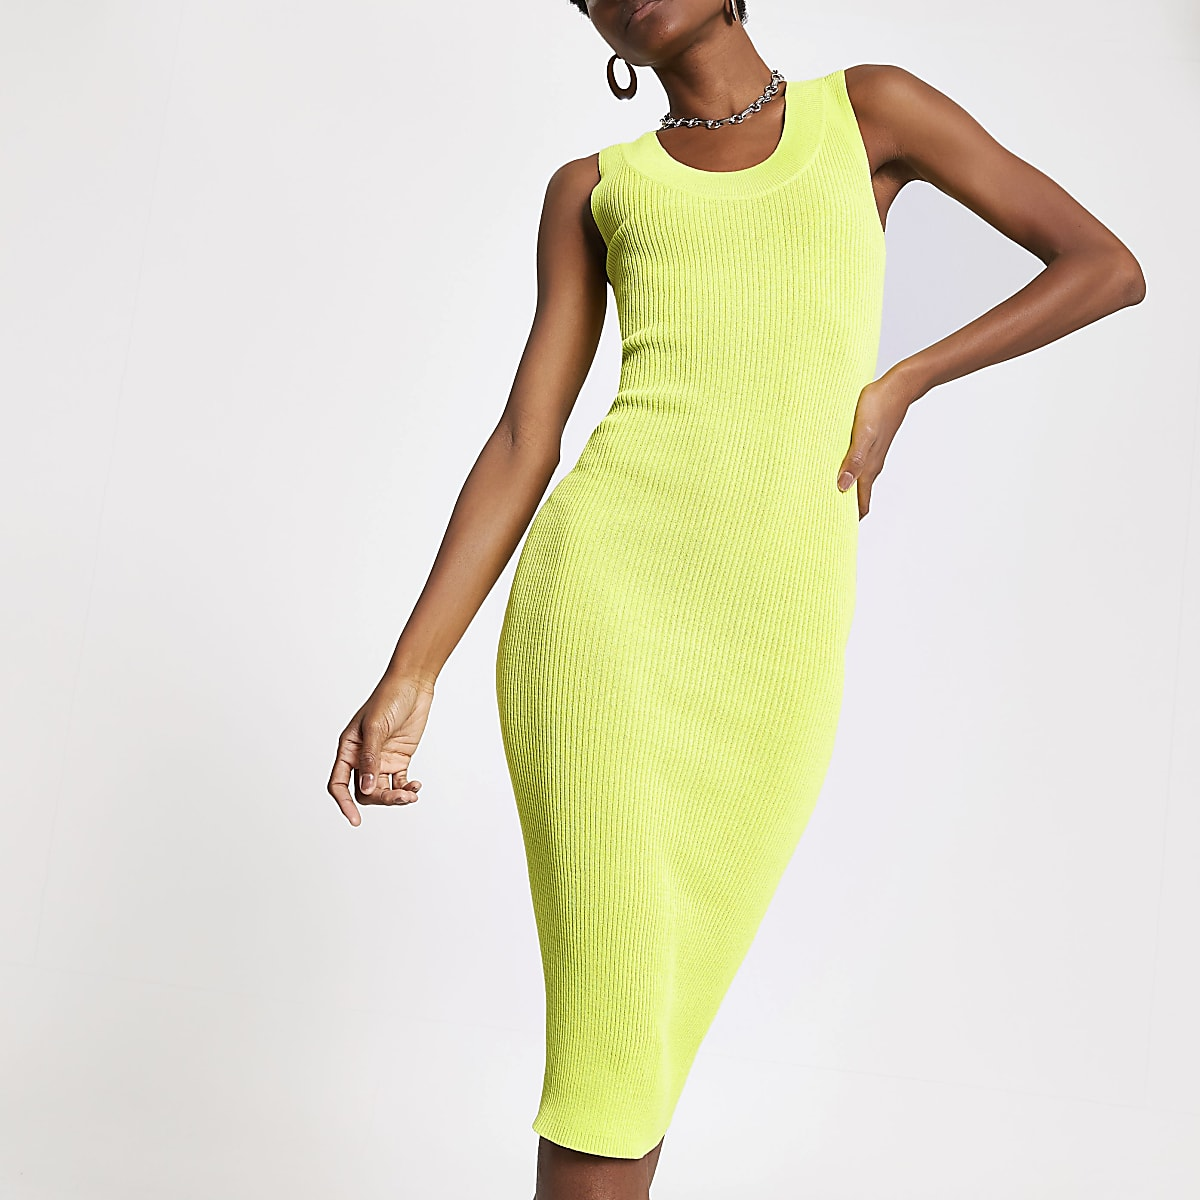 Neon yellow knitted midi dress